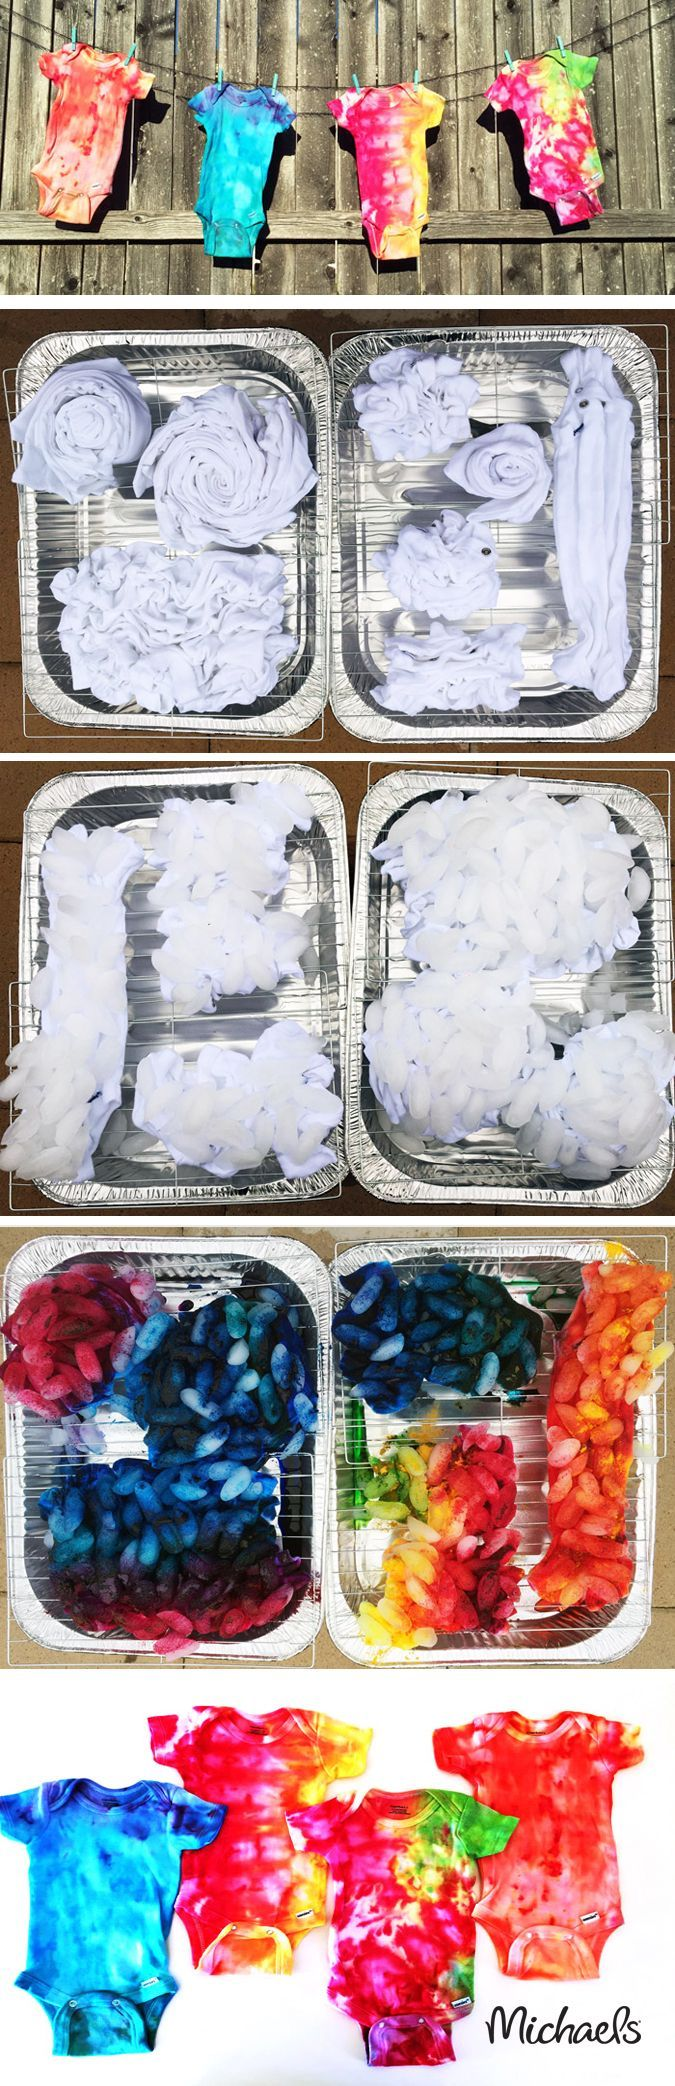 DIY Ice Dyeing Tutorial. Step by step to create these bohemian style ice dyed tie dye onsies